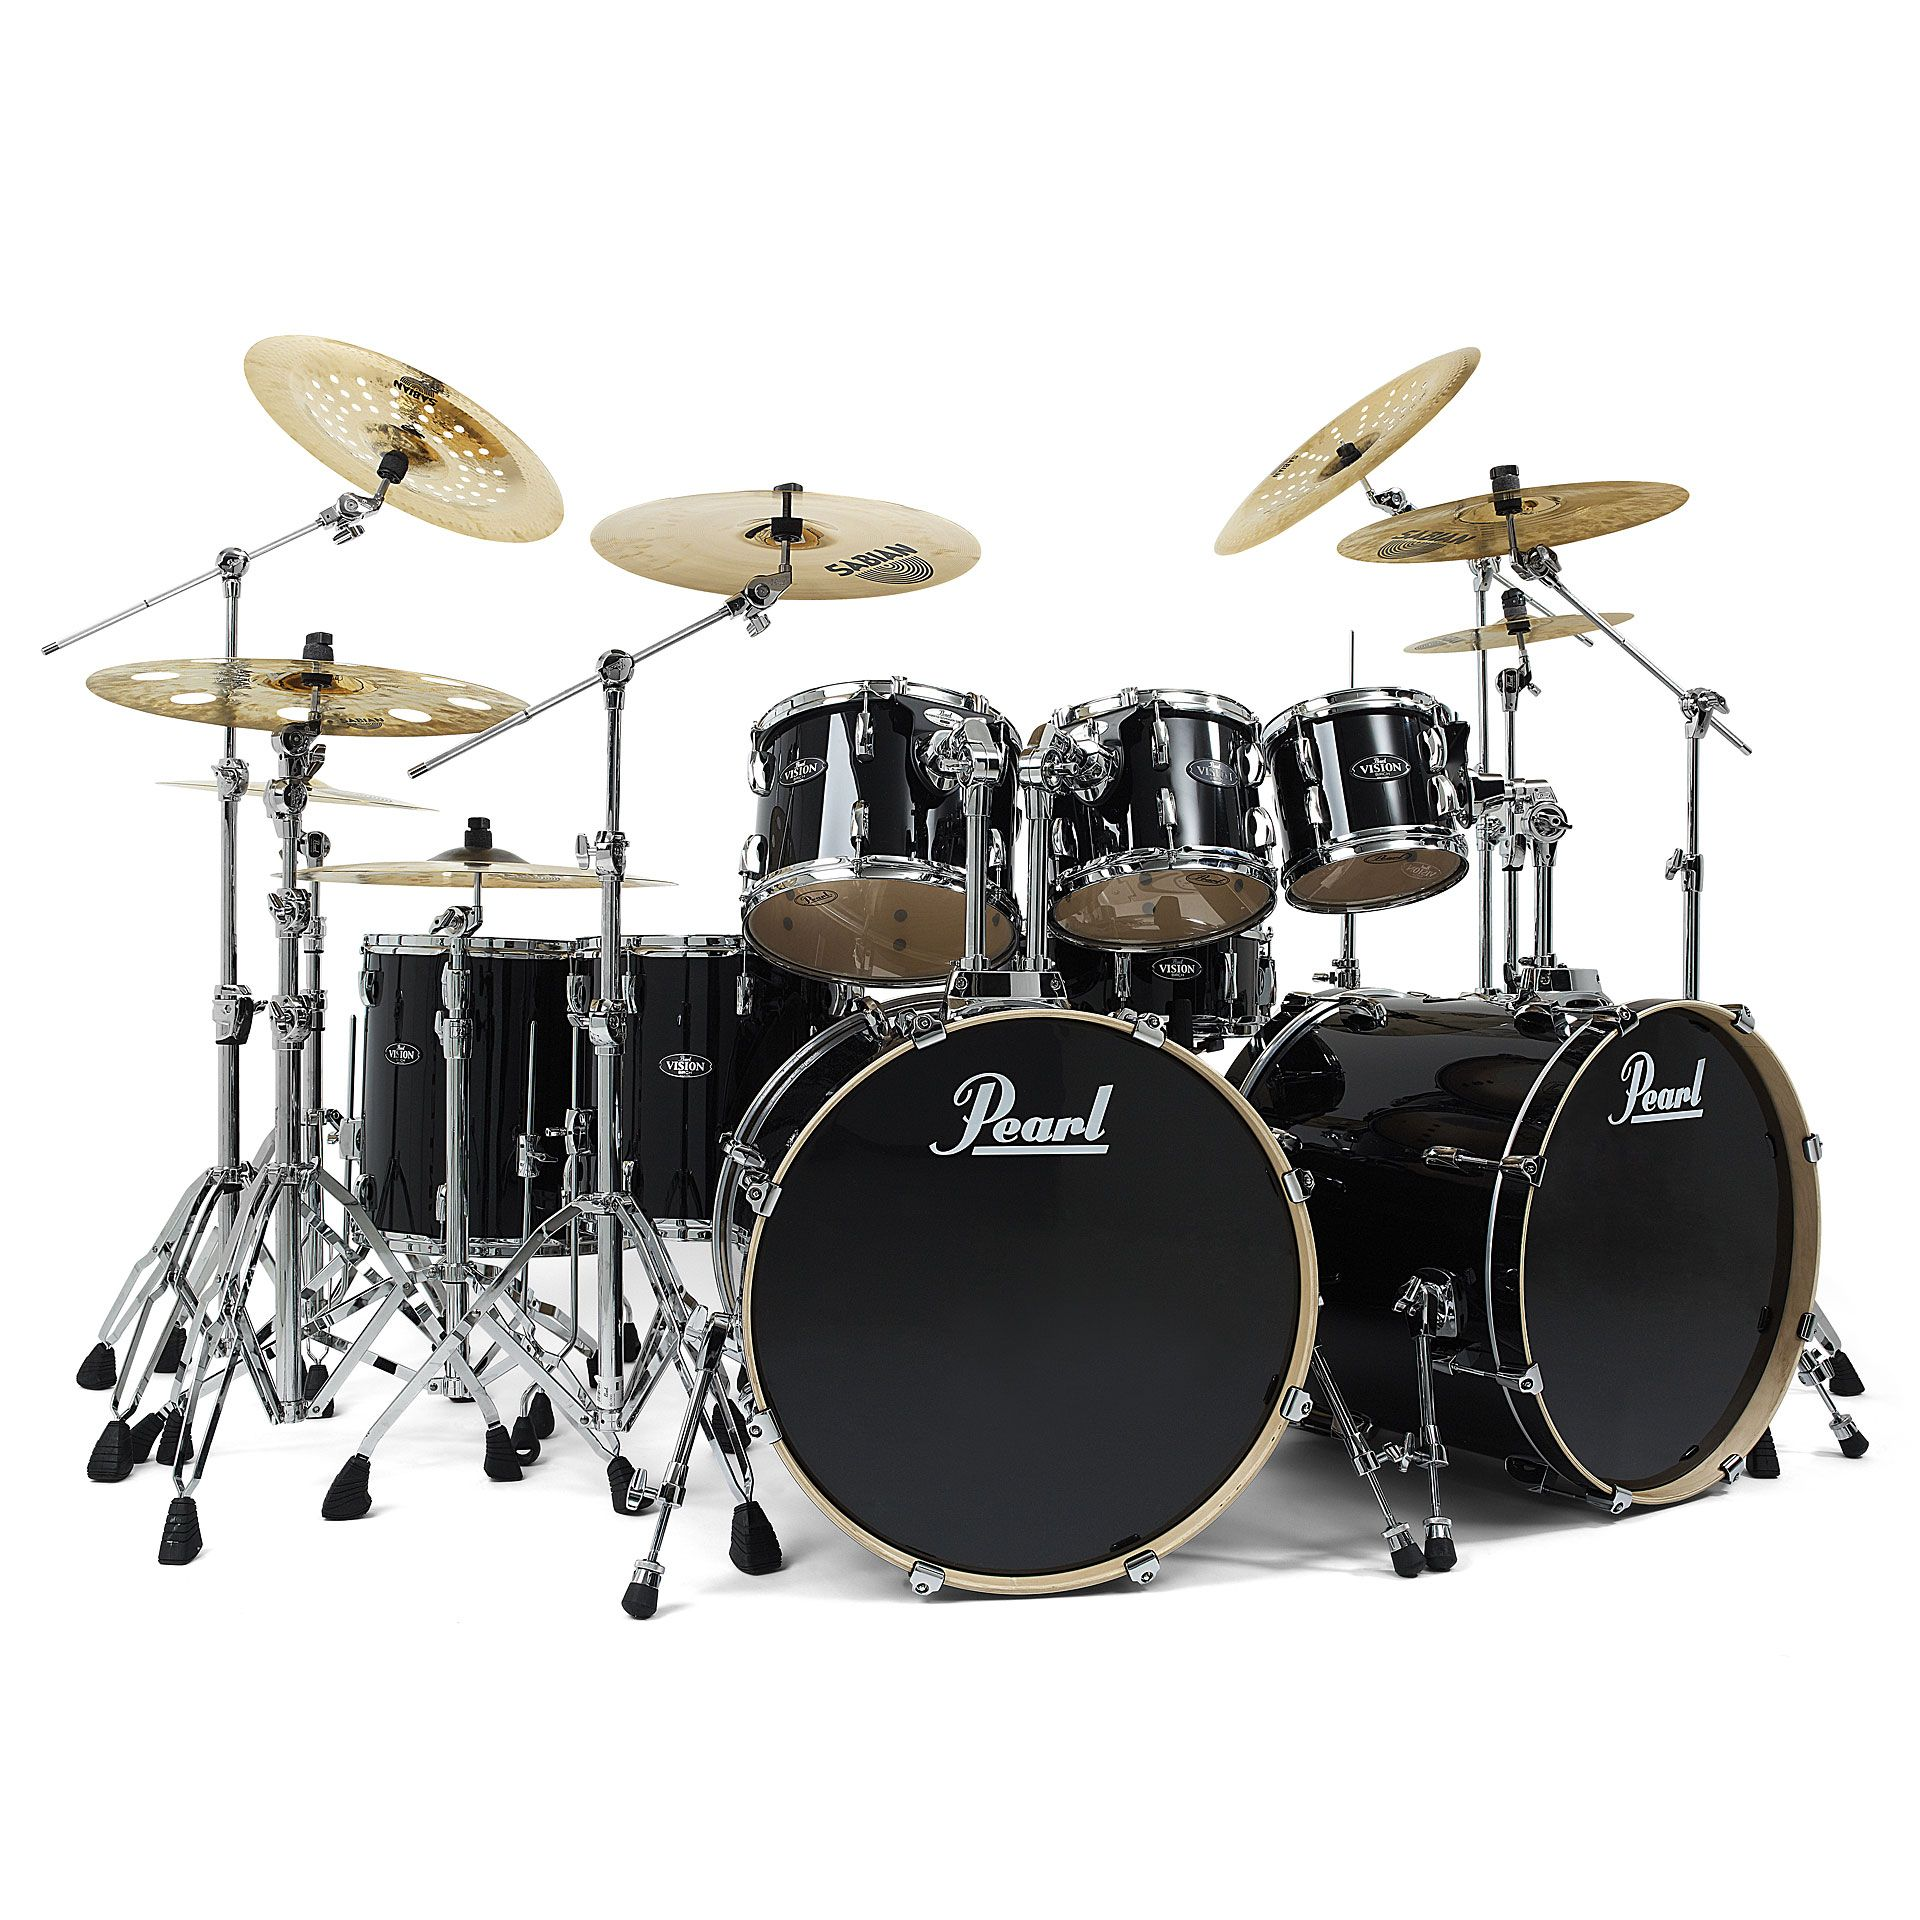 pearl drum sets home drums and percussion acoustic drums acoustic drum kits all pearl. Black Bedroom Furniture Sets. Home Design Ideas